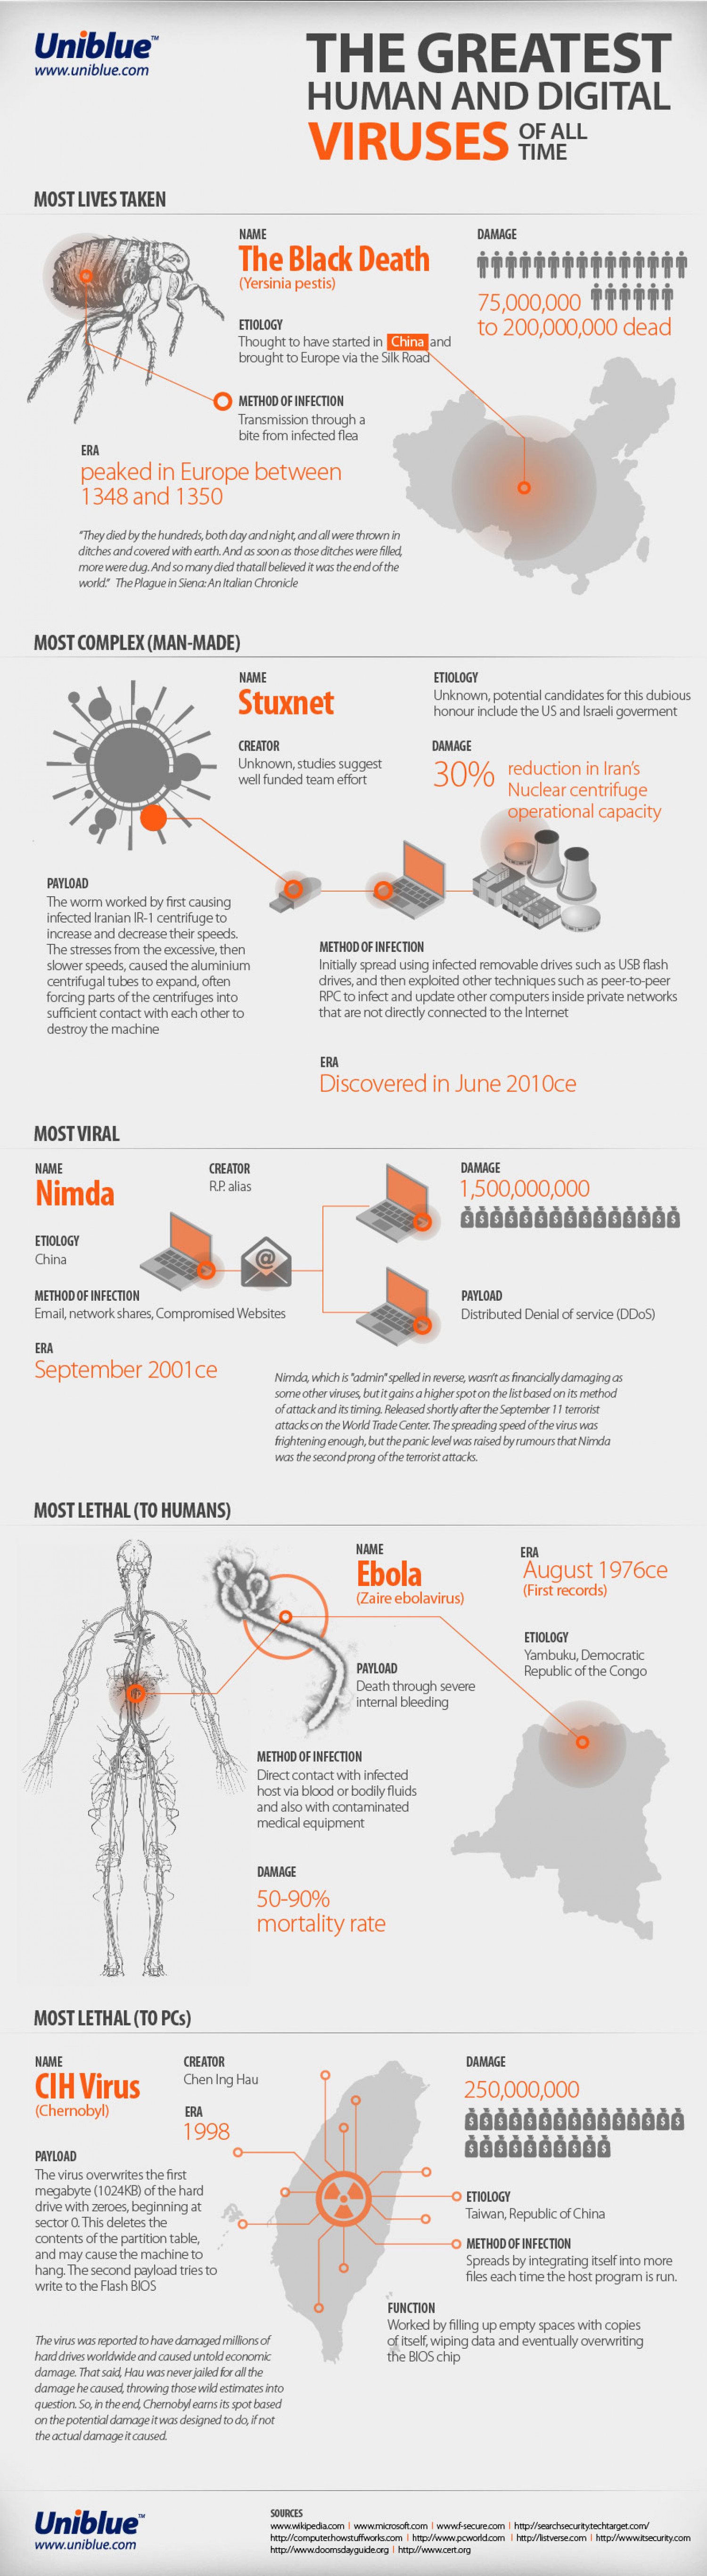 The Greatest Viruses of All Time Infographic